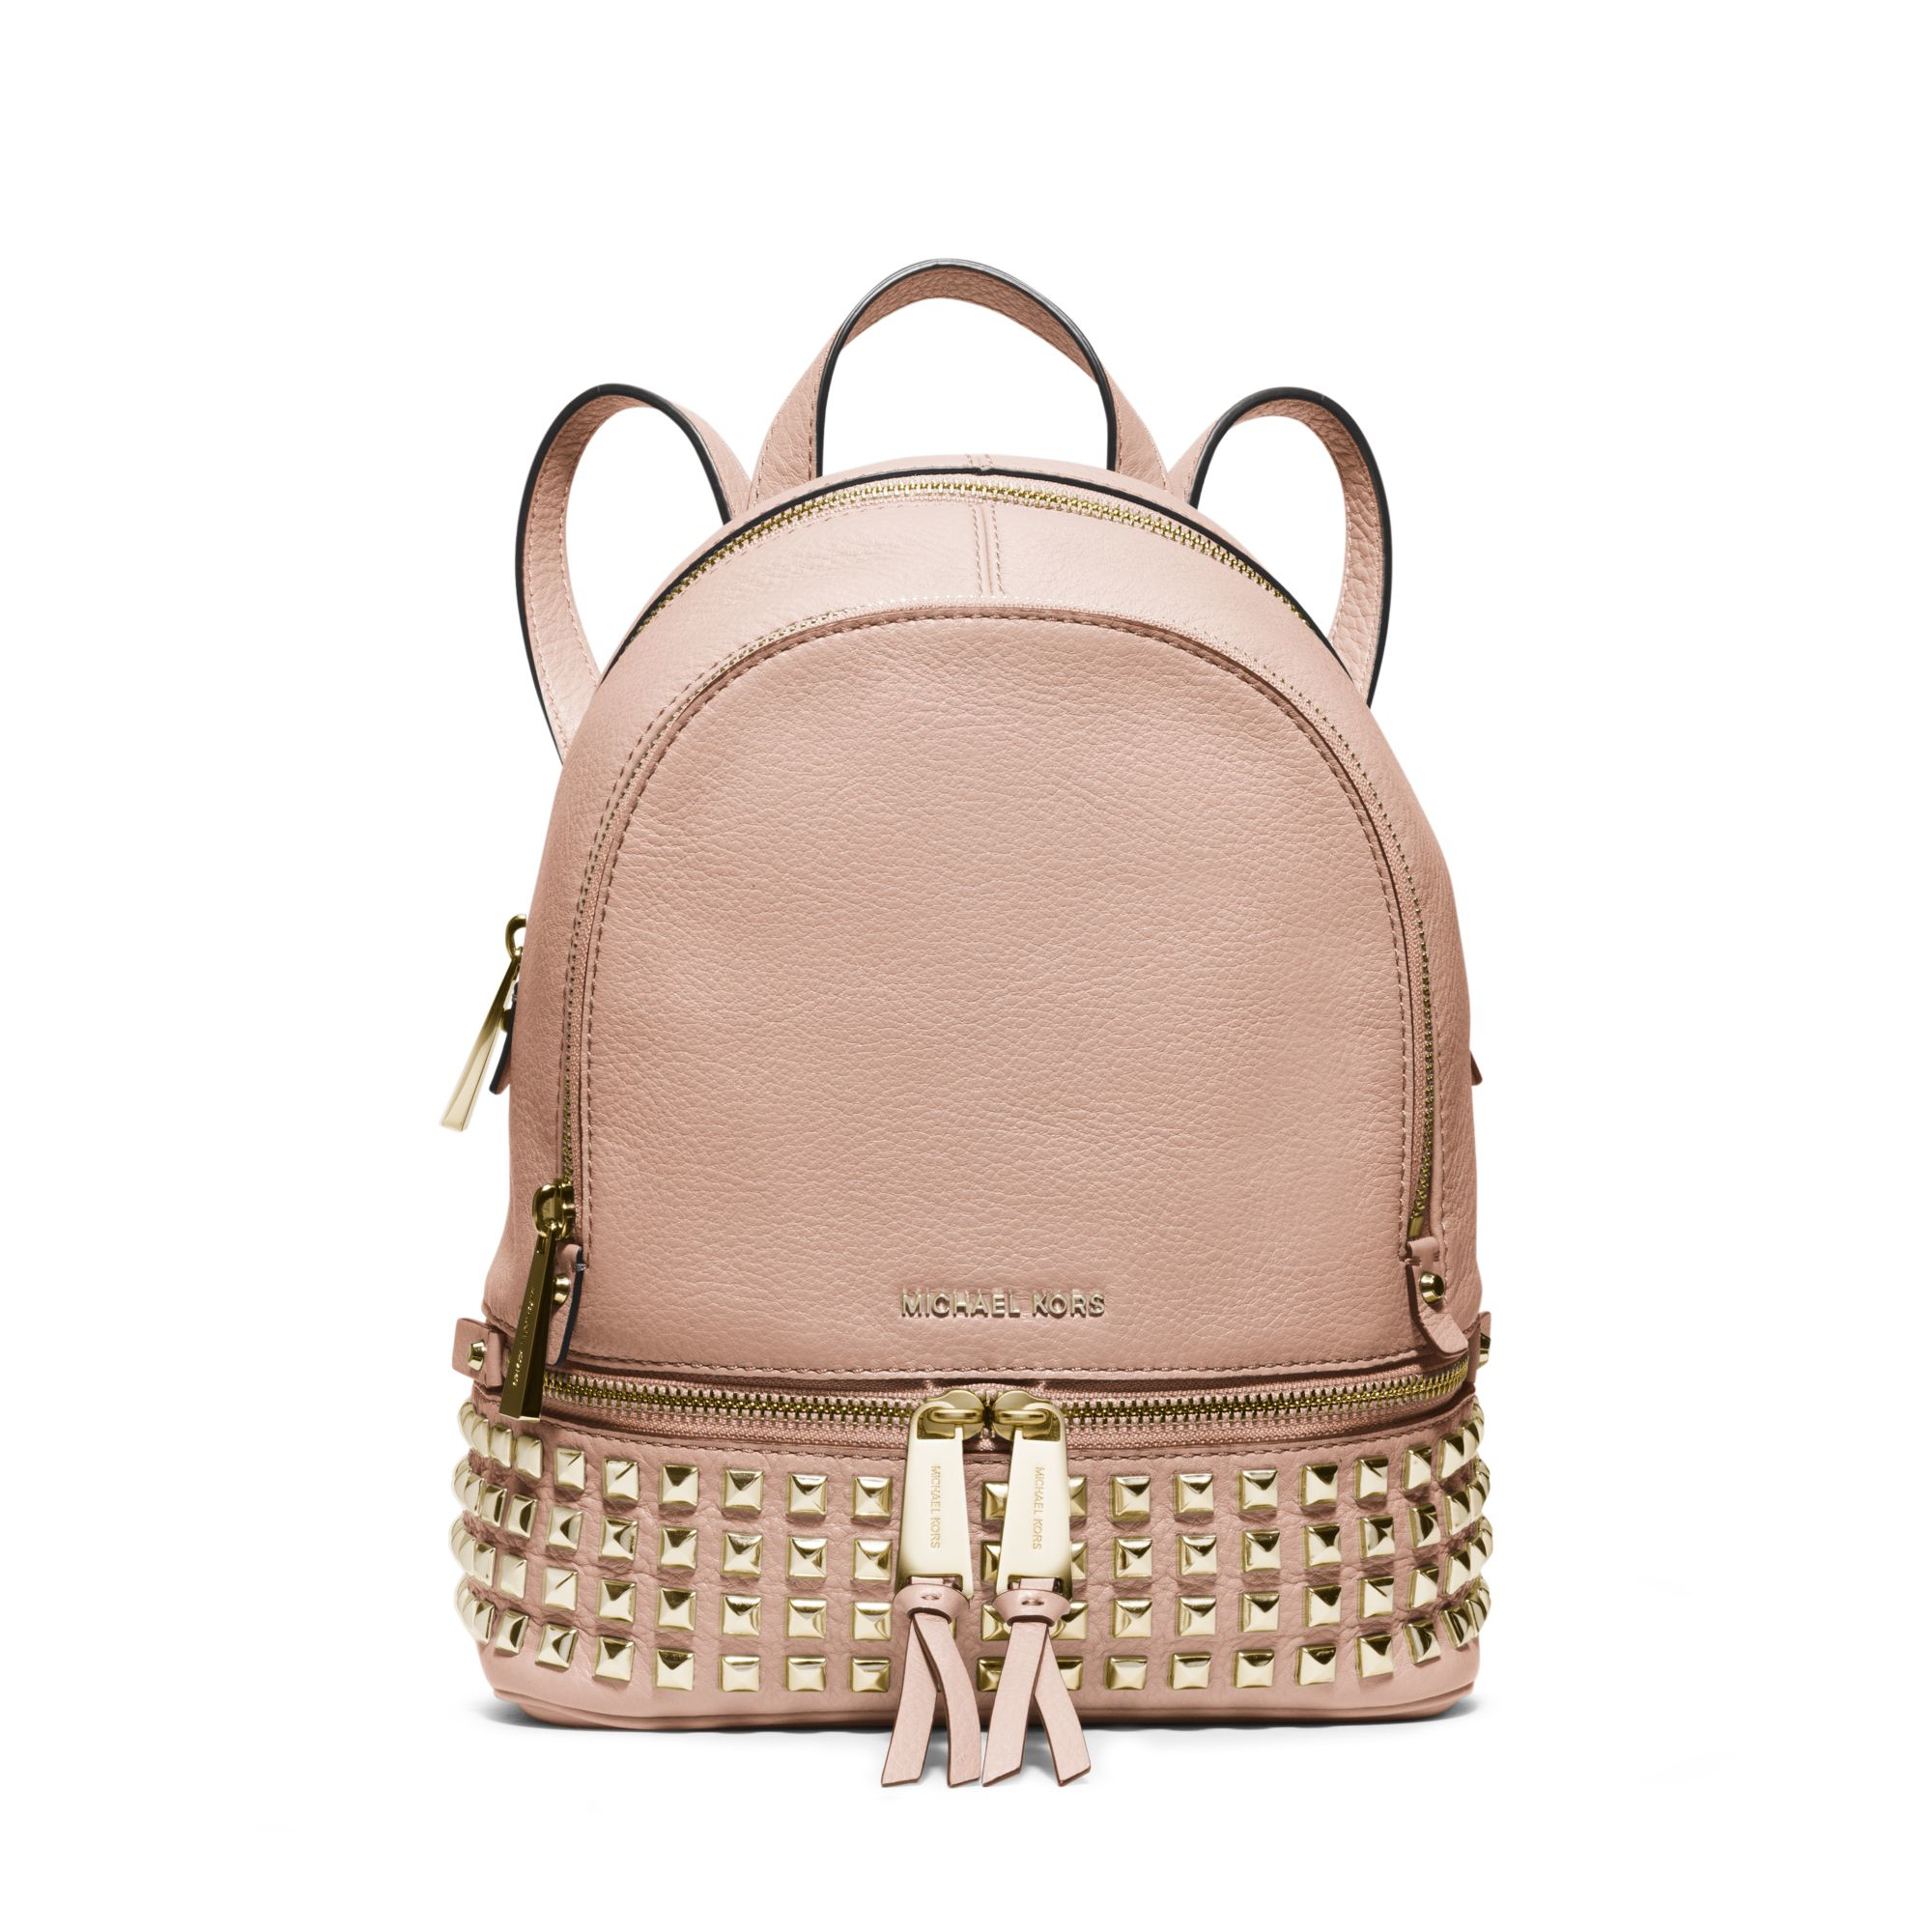 1d20823dd6c8 Michael Kors Rhea Small Backpack Soft Pink- Fenix Toulouse Handball